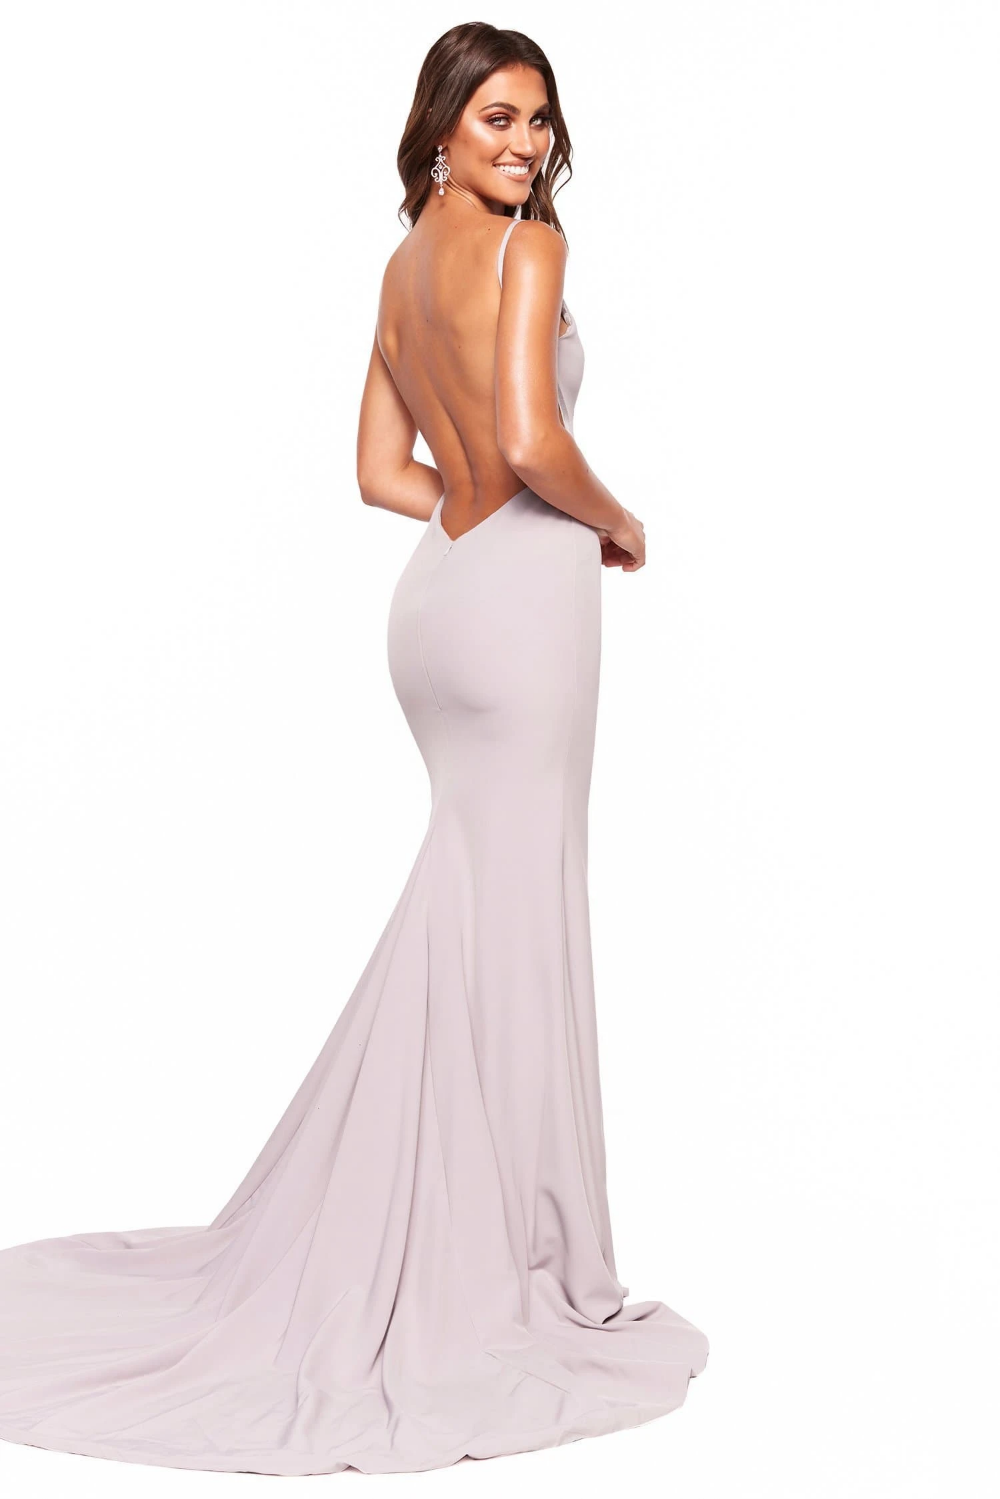 A&N Luxe Malia Crepe Gown Grey Lilac in 2020 Simple